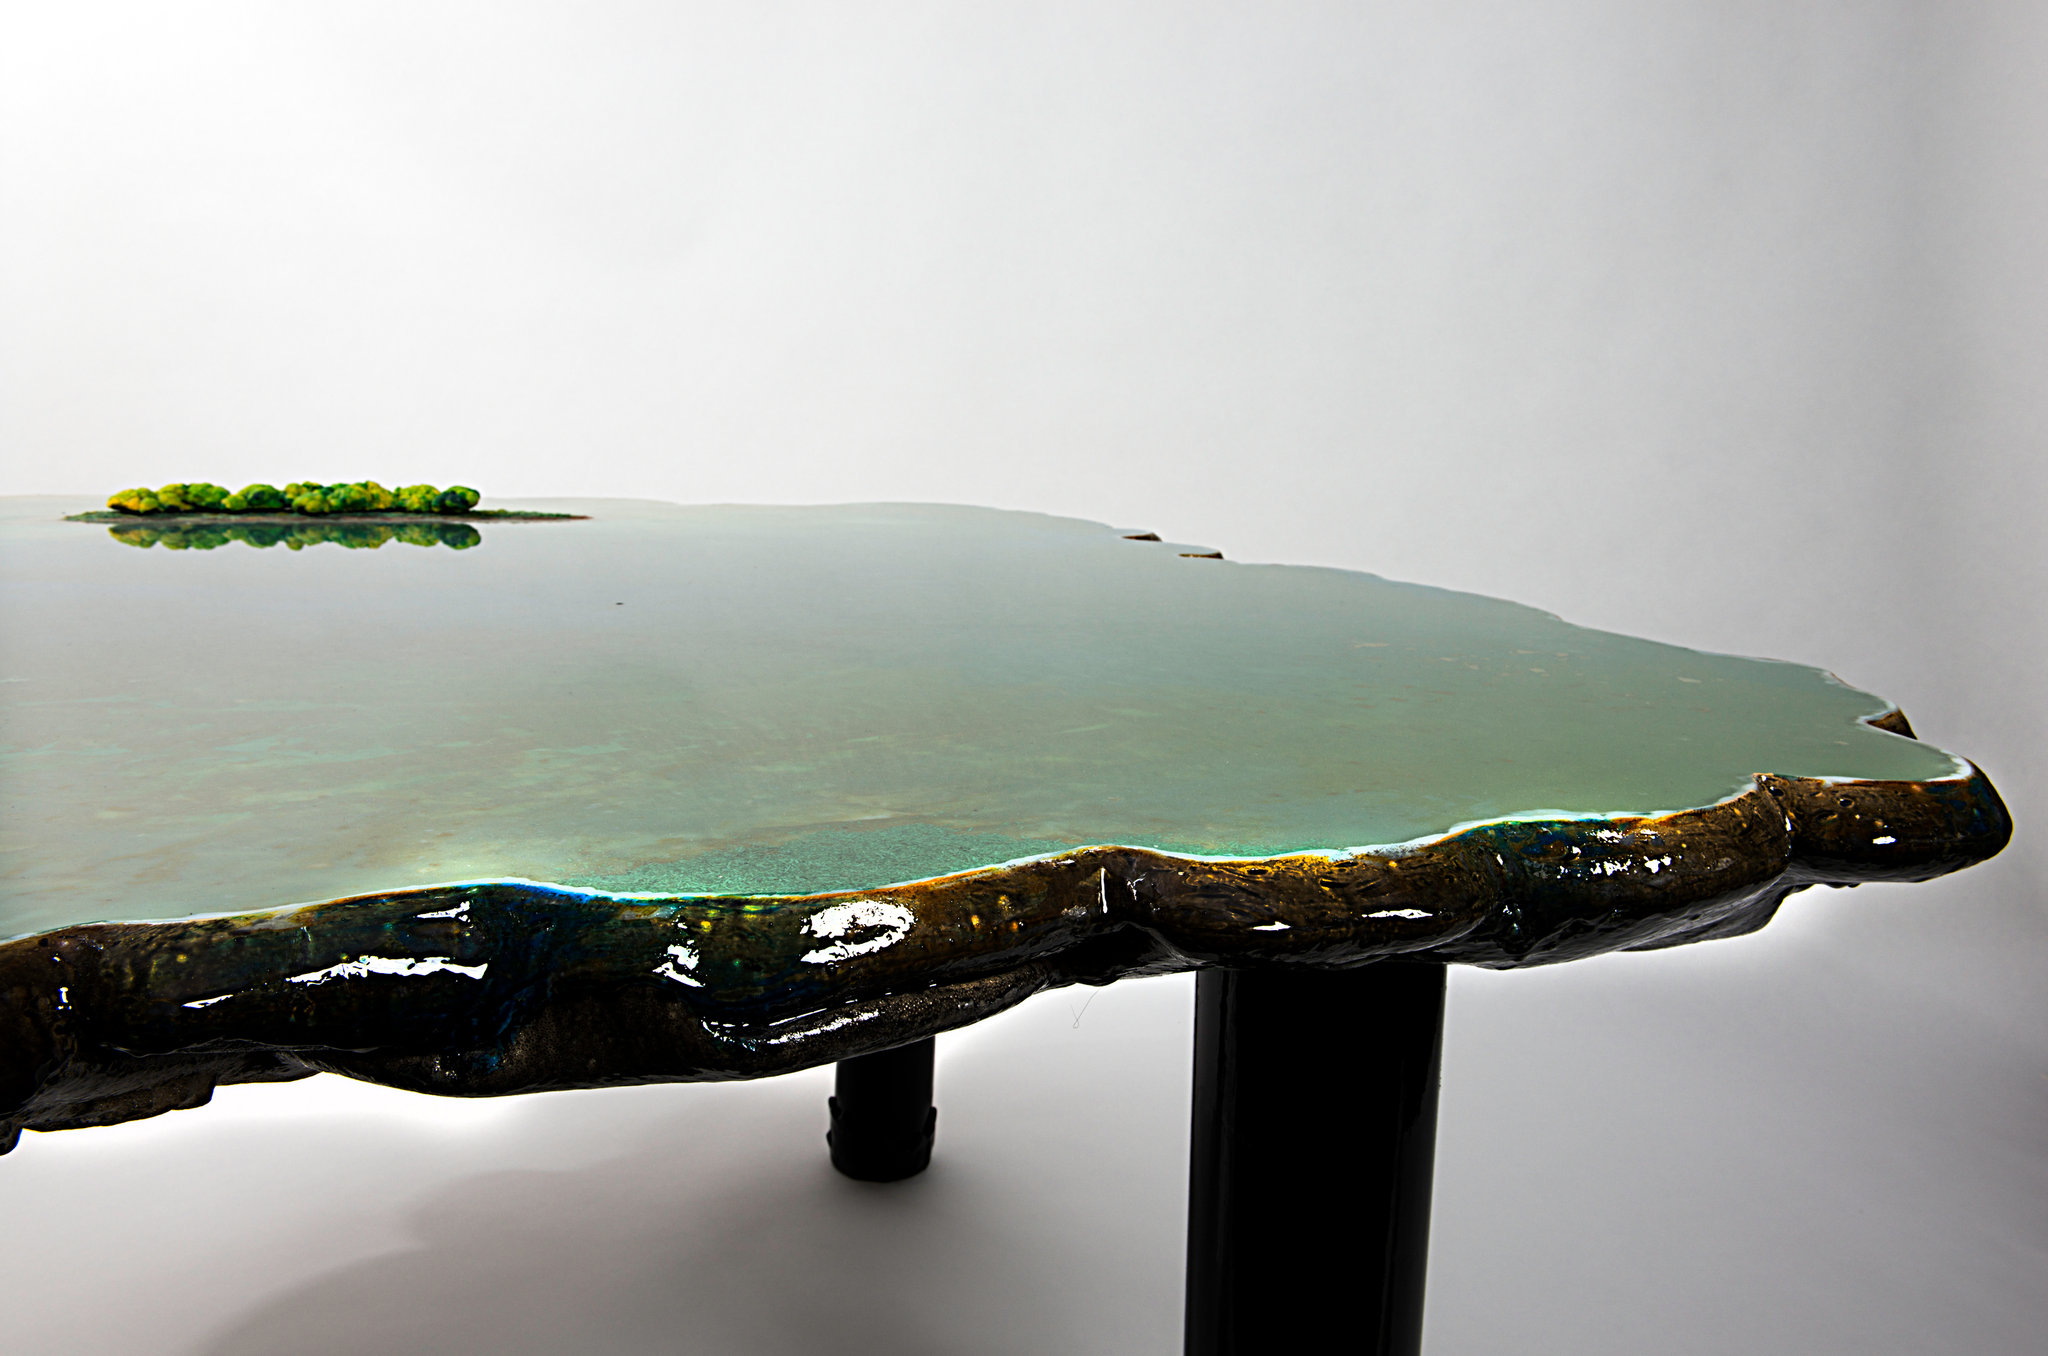 9 gaetano pesce pond table david gill galleries london italian furniture interior design home decor wloskie meble luksusowe projektowanie wnetrz sebastian piras nytimes